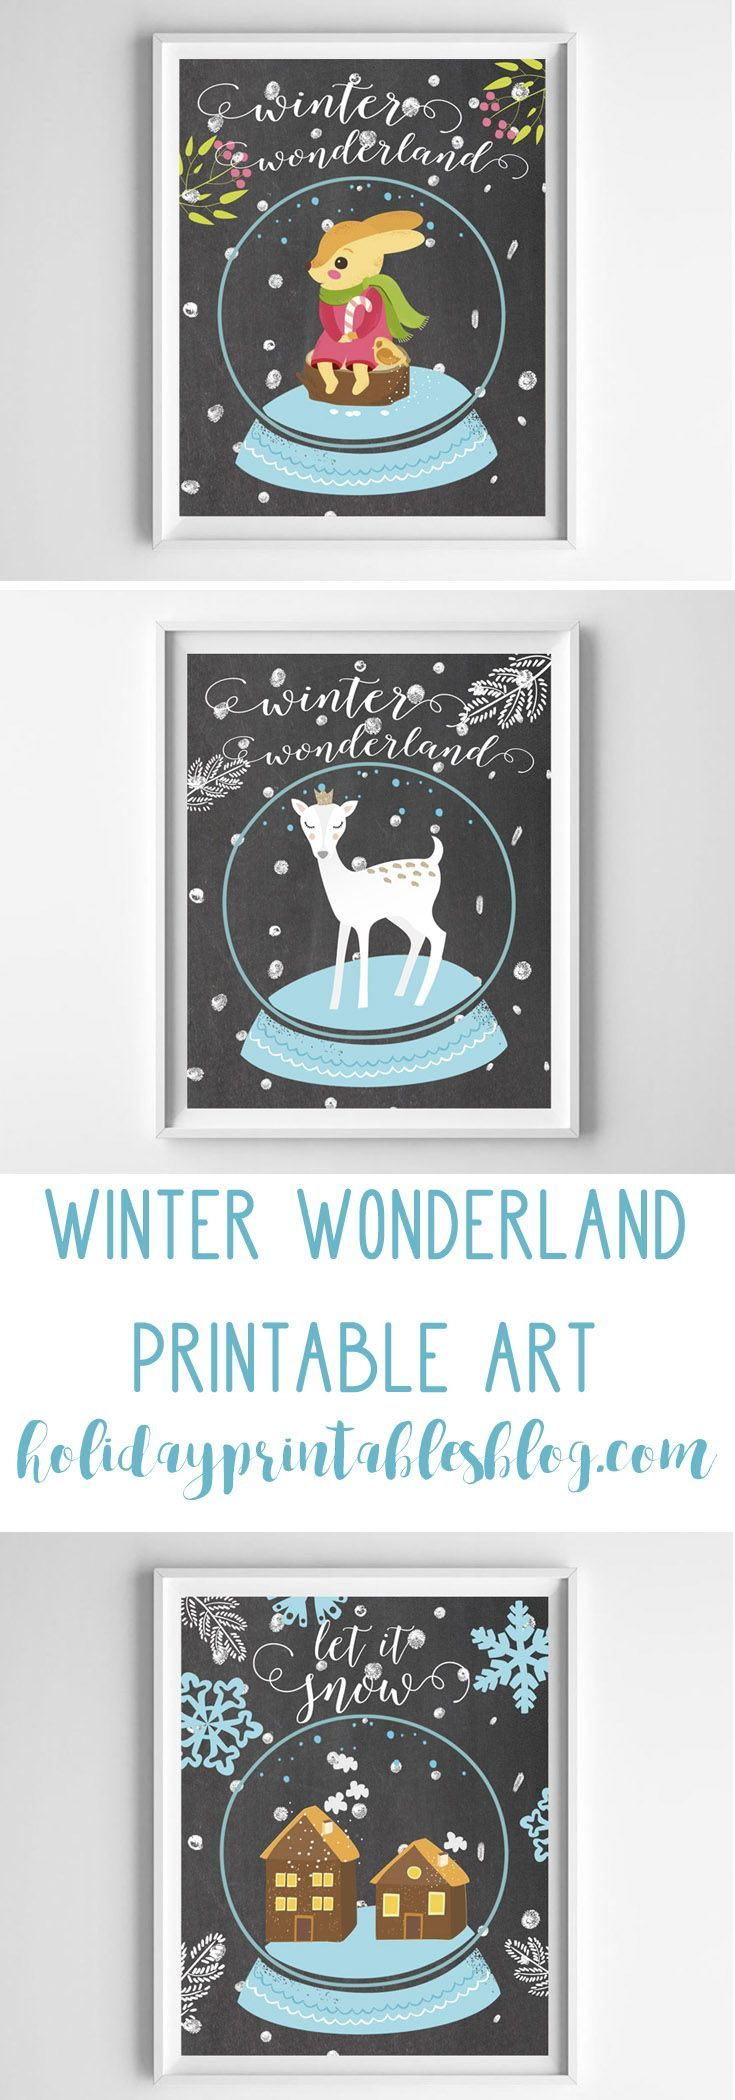 144 best printables images on pinterest adhesive box and bridge winter printable art winter wonderland snow printables free printable art whimsical jeuxipadfo Images